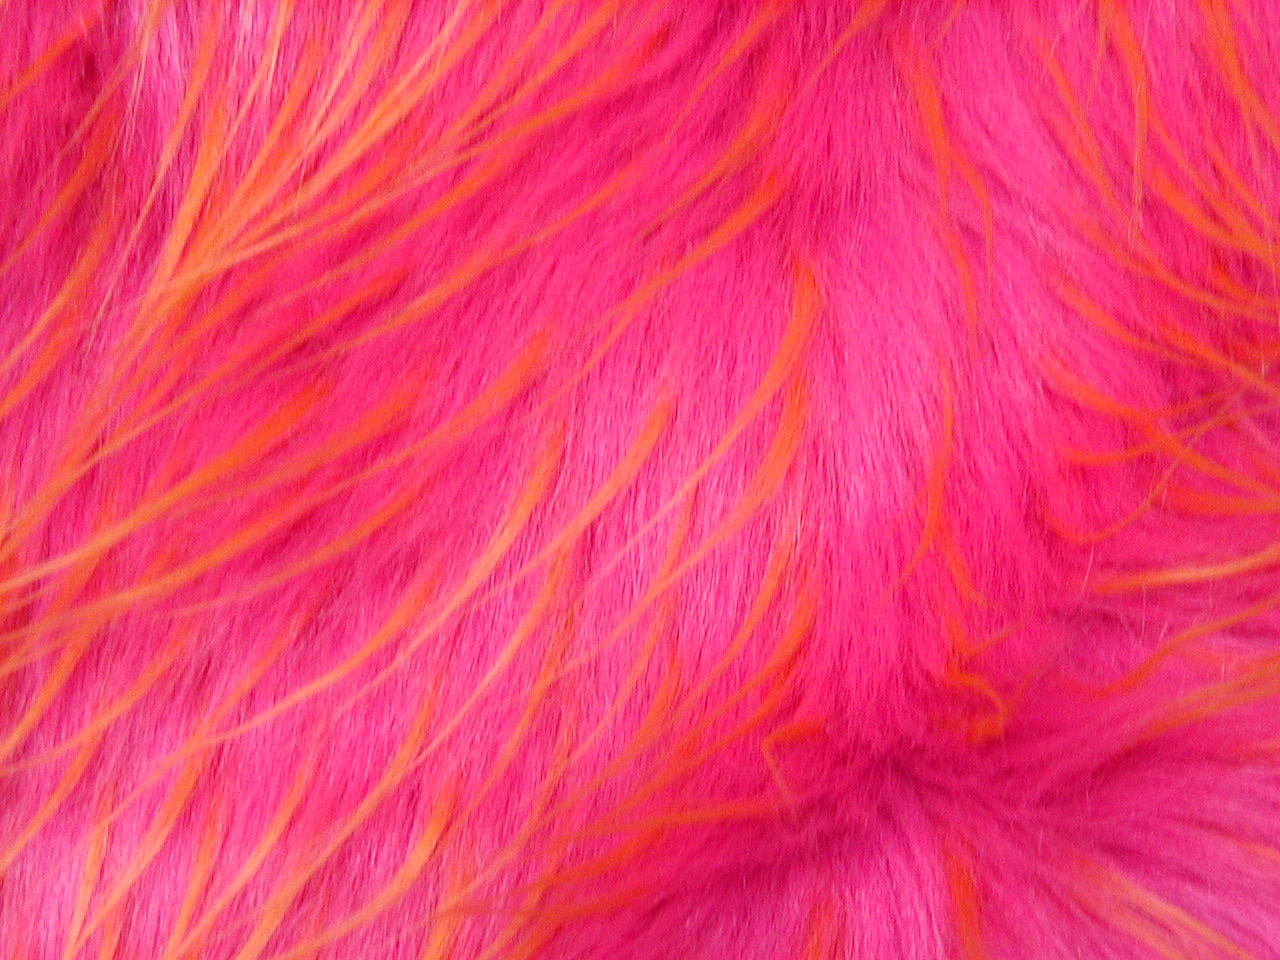 Pink Fur Wallpaper - WallpaperSafari